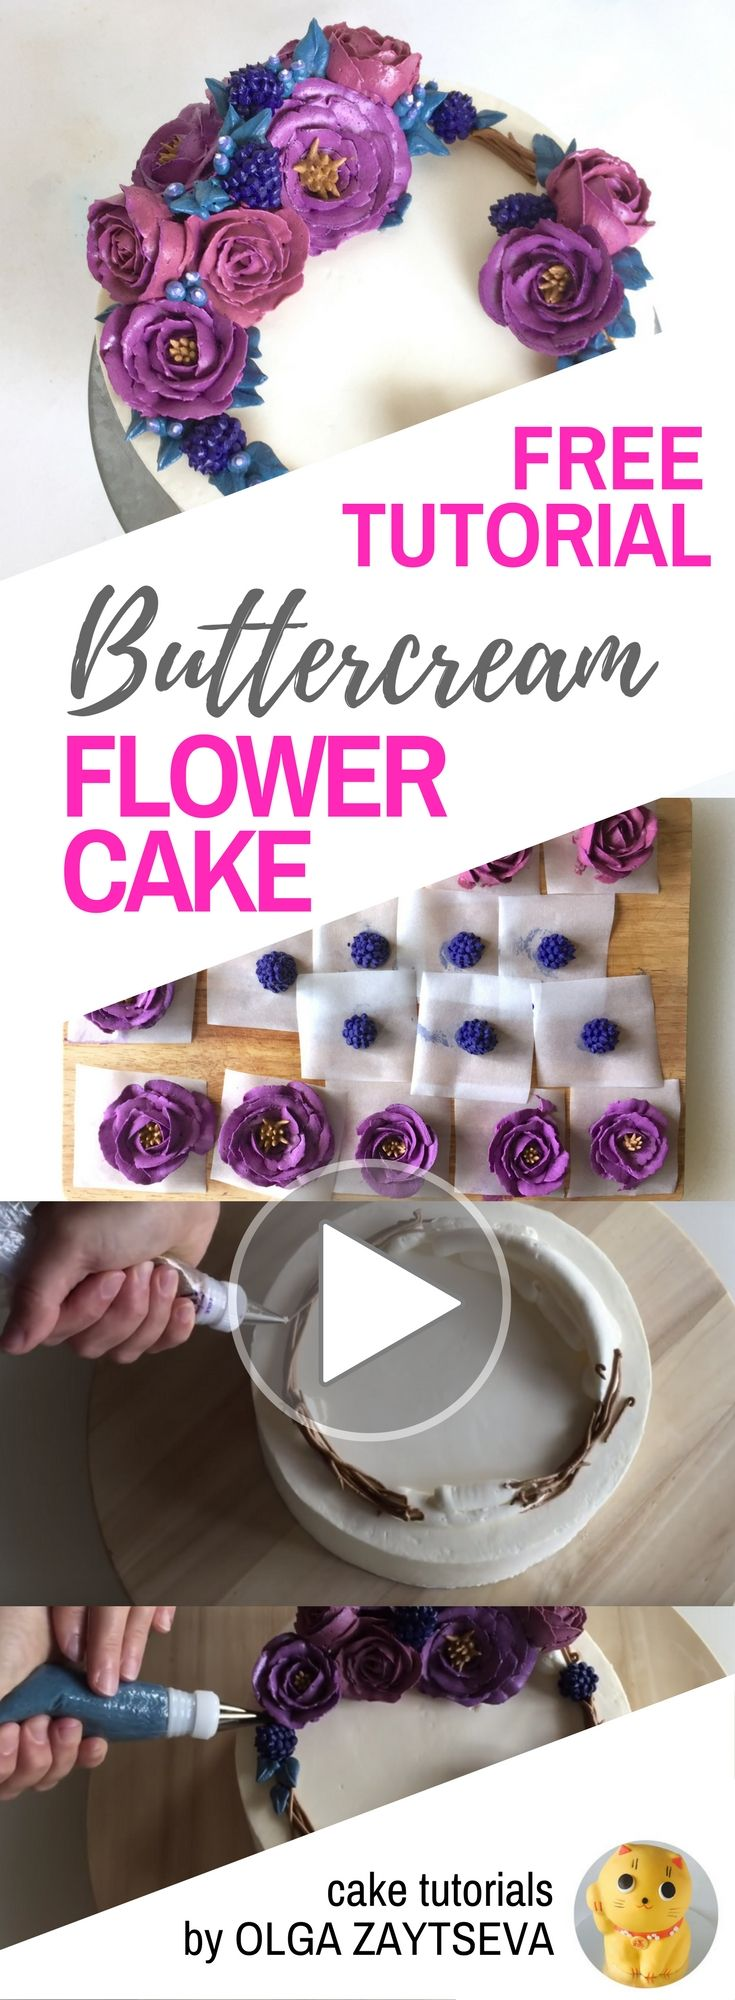 HOT CAKE TRENDS How to make Buttercream roses and berries flower wreath cake - Cake decorating tutorial by Olga Zaytseva. Learn how to make very trendy buttercream roses, pipe berries and create this flower wreath cake.